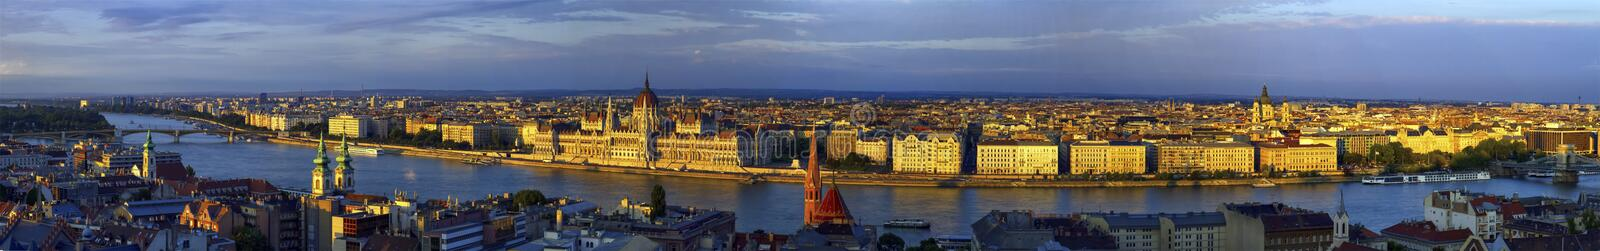 Aerial panoramic view of Danube and Budapest city, Hungary royalty free stock photography